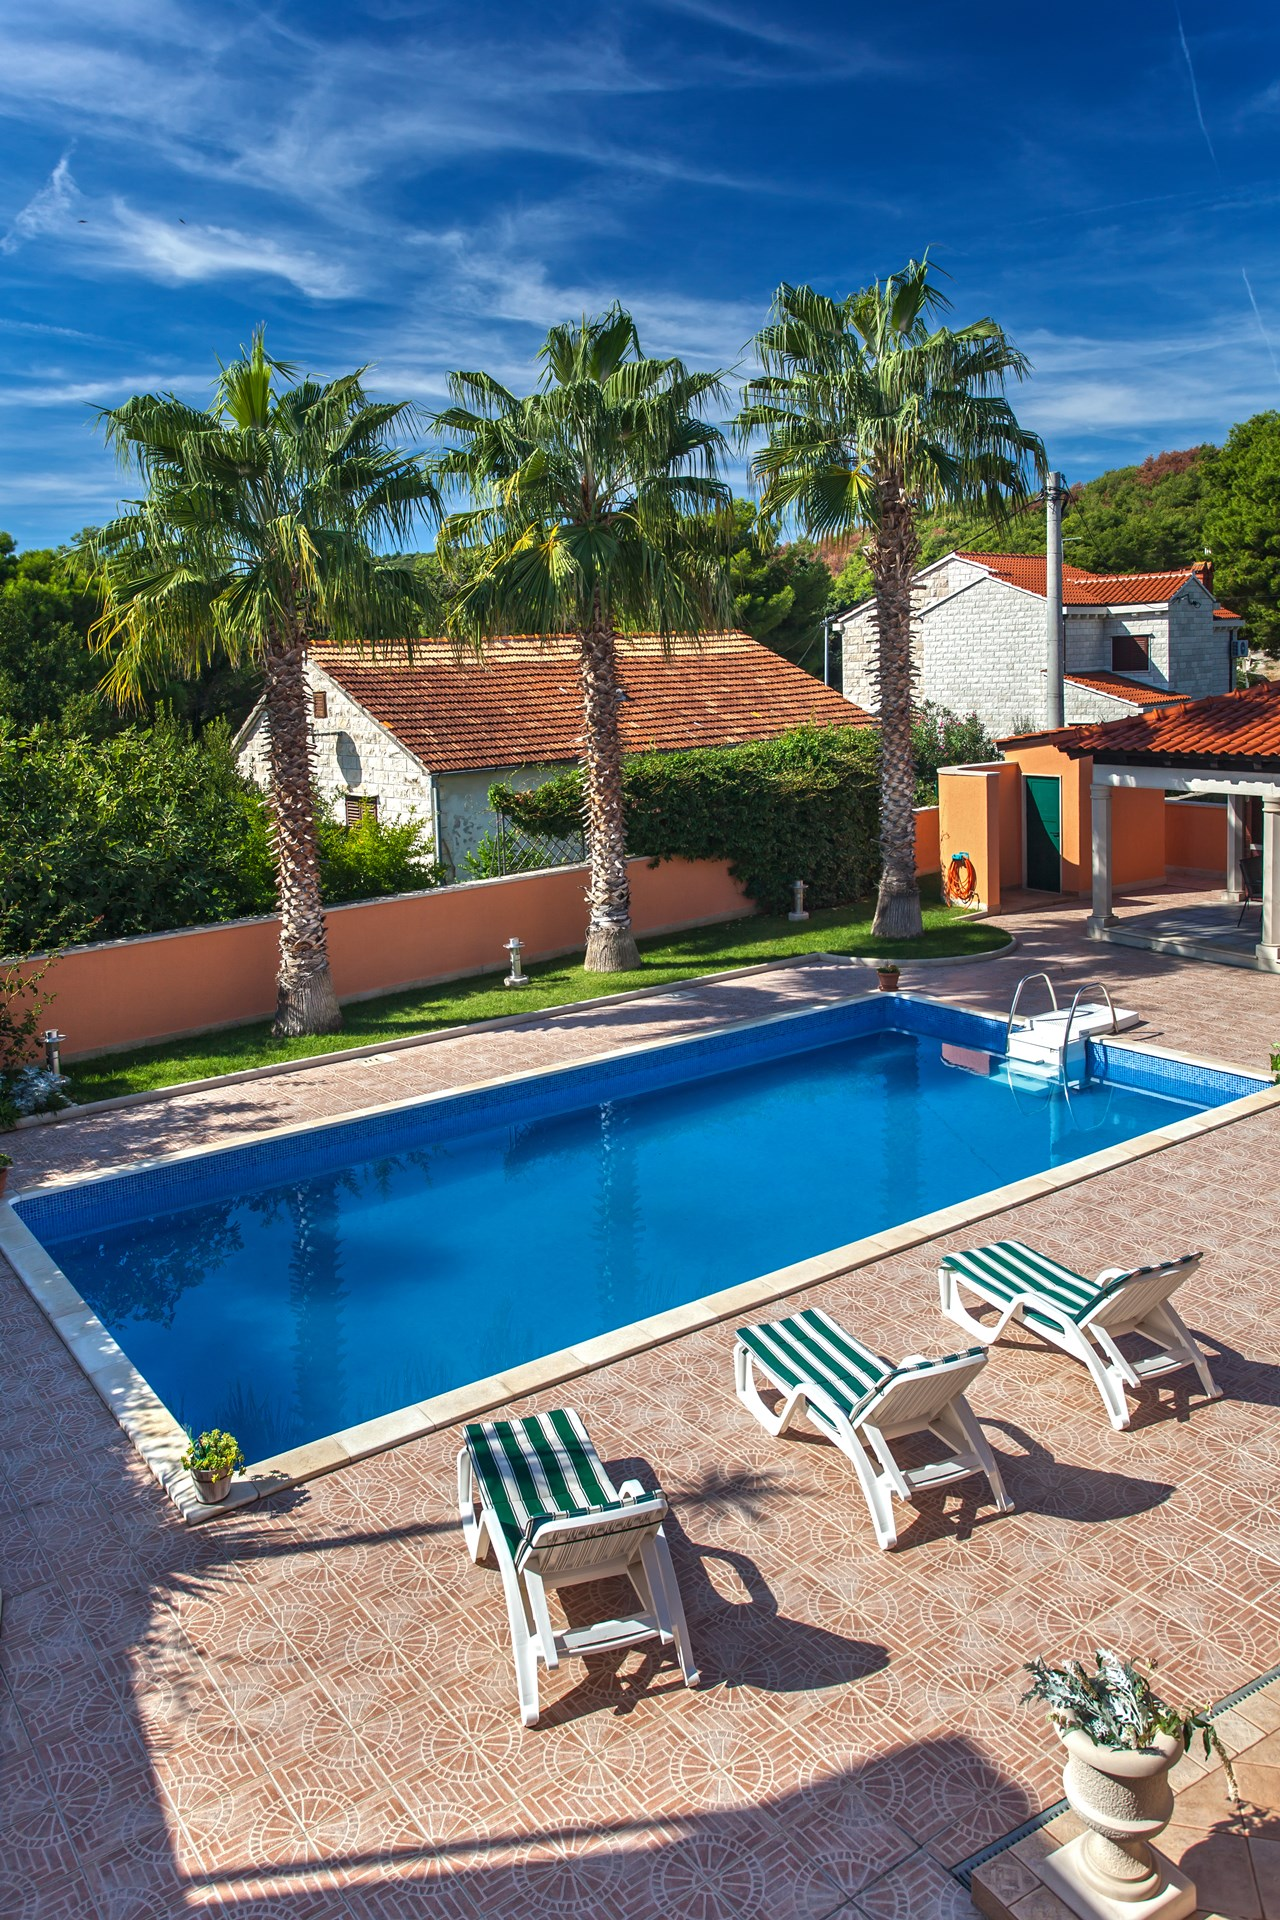 Swimming pool with sunbeds and relaxing area on the front terrace the Villa Rasotica